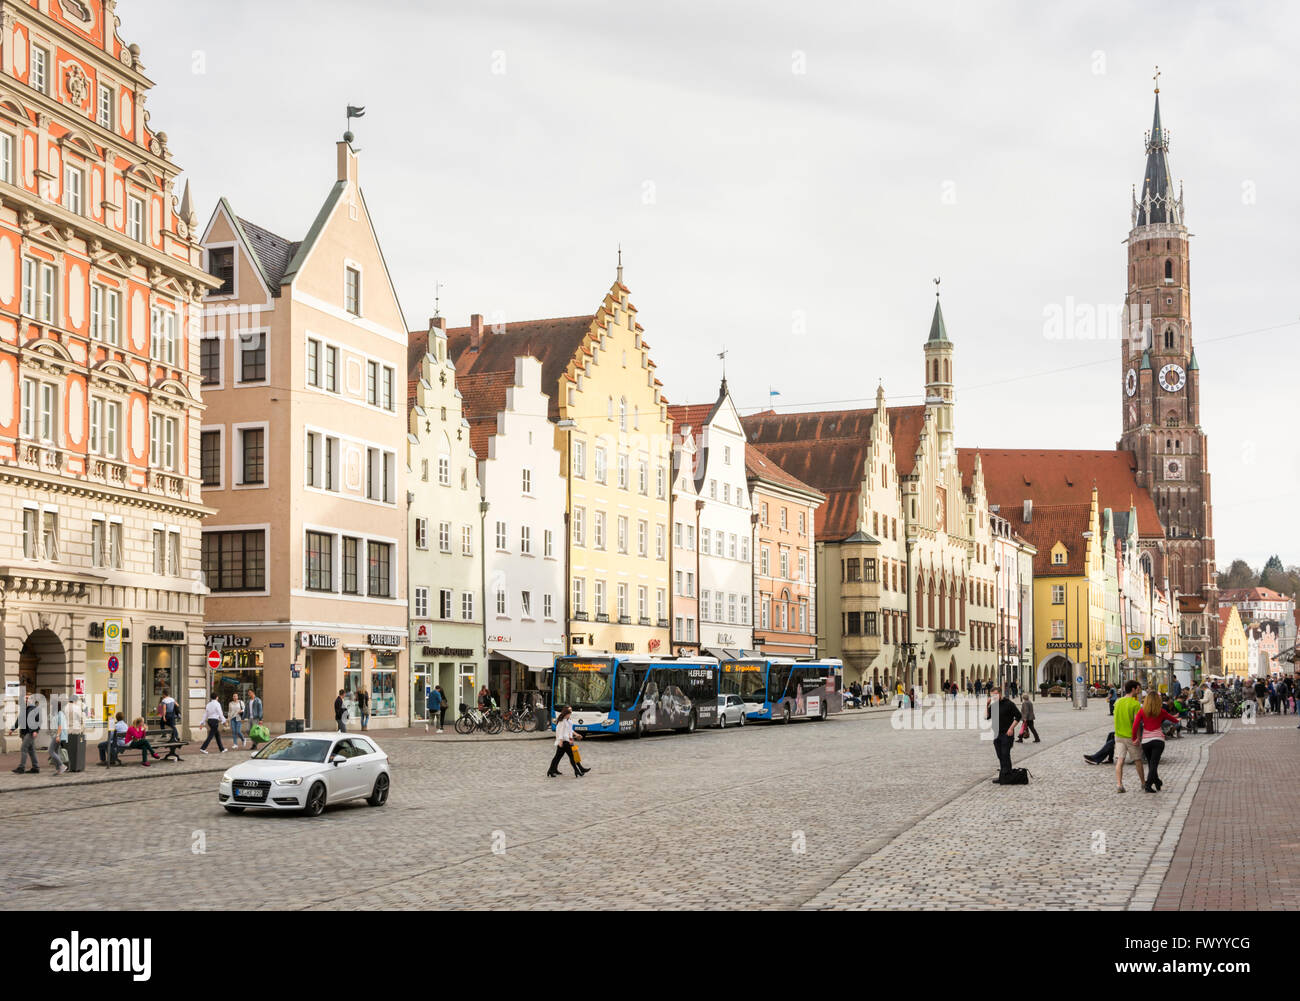 LANDSHUT, GERMANY - MARCH 31. Tourists at a  pedestrian area in Landshut, Germany on March 31, 2016. - Stock Image